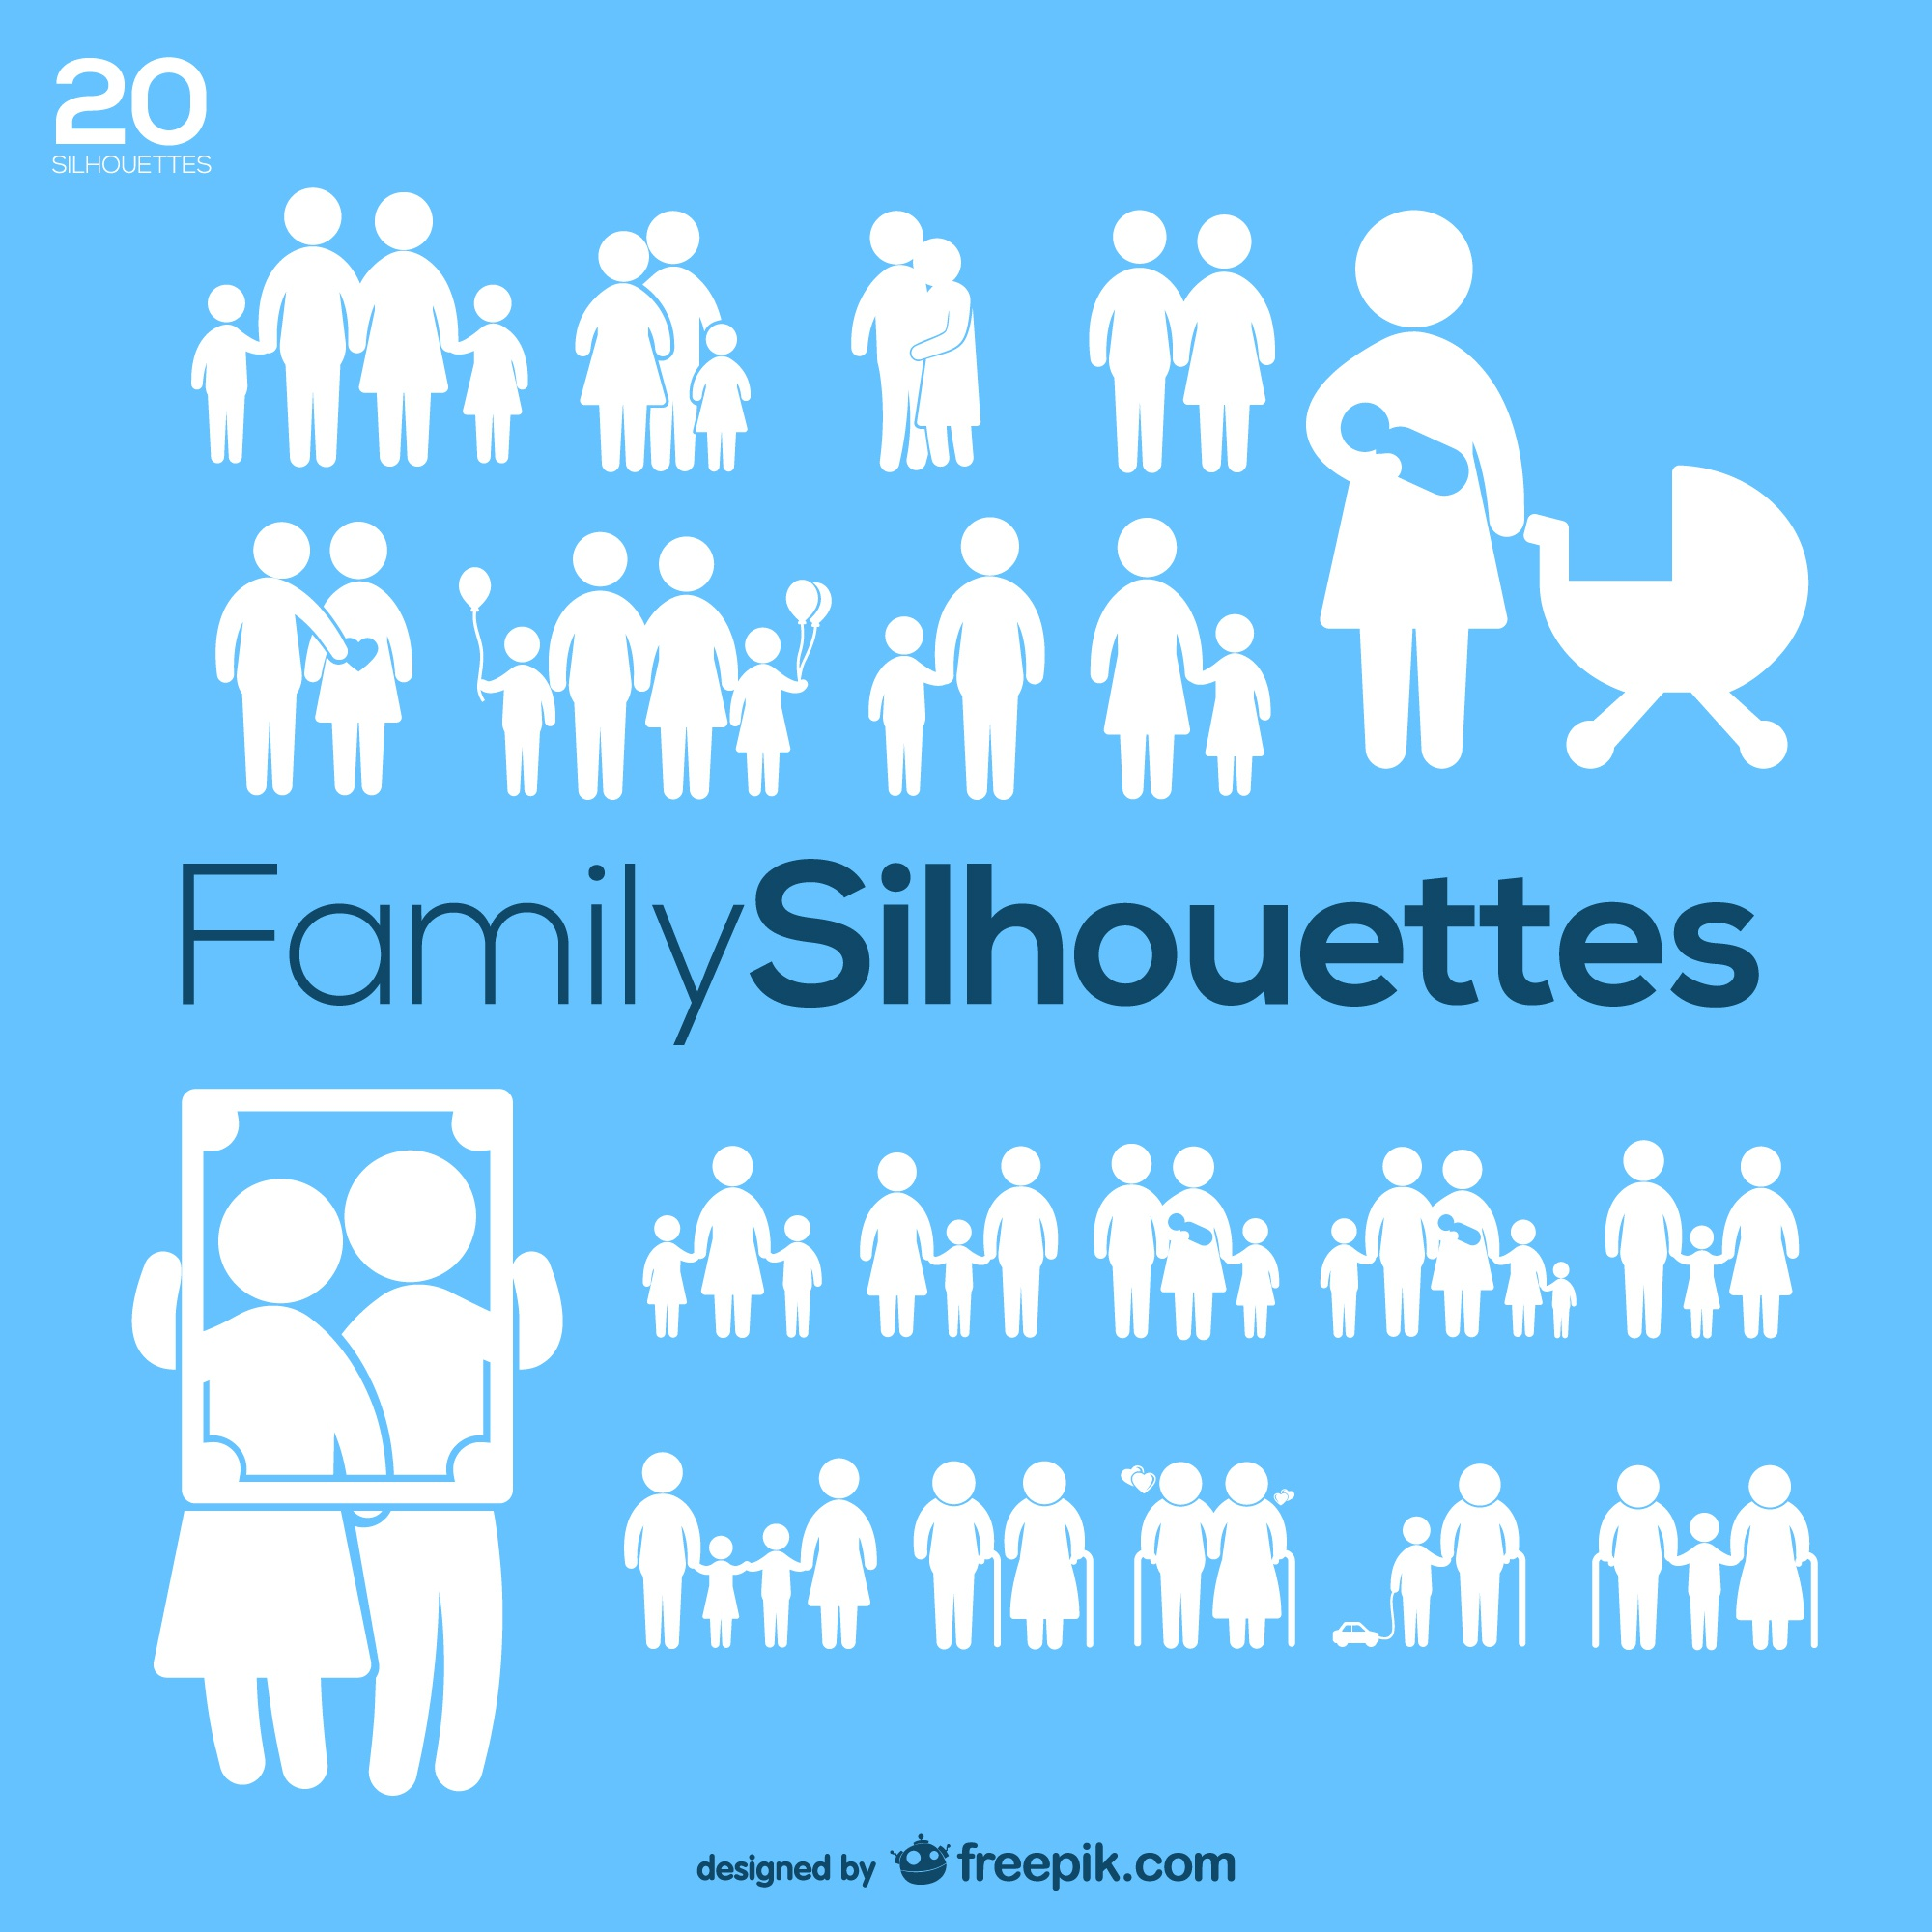 Family silhouettes vector pack